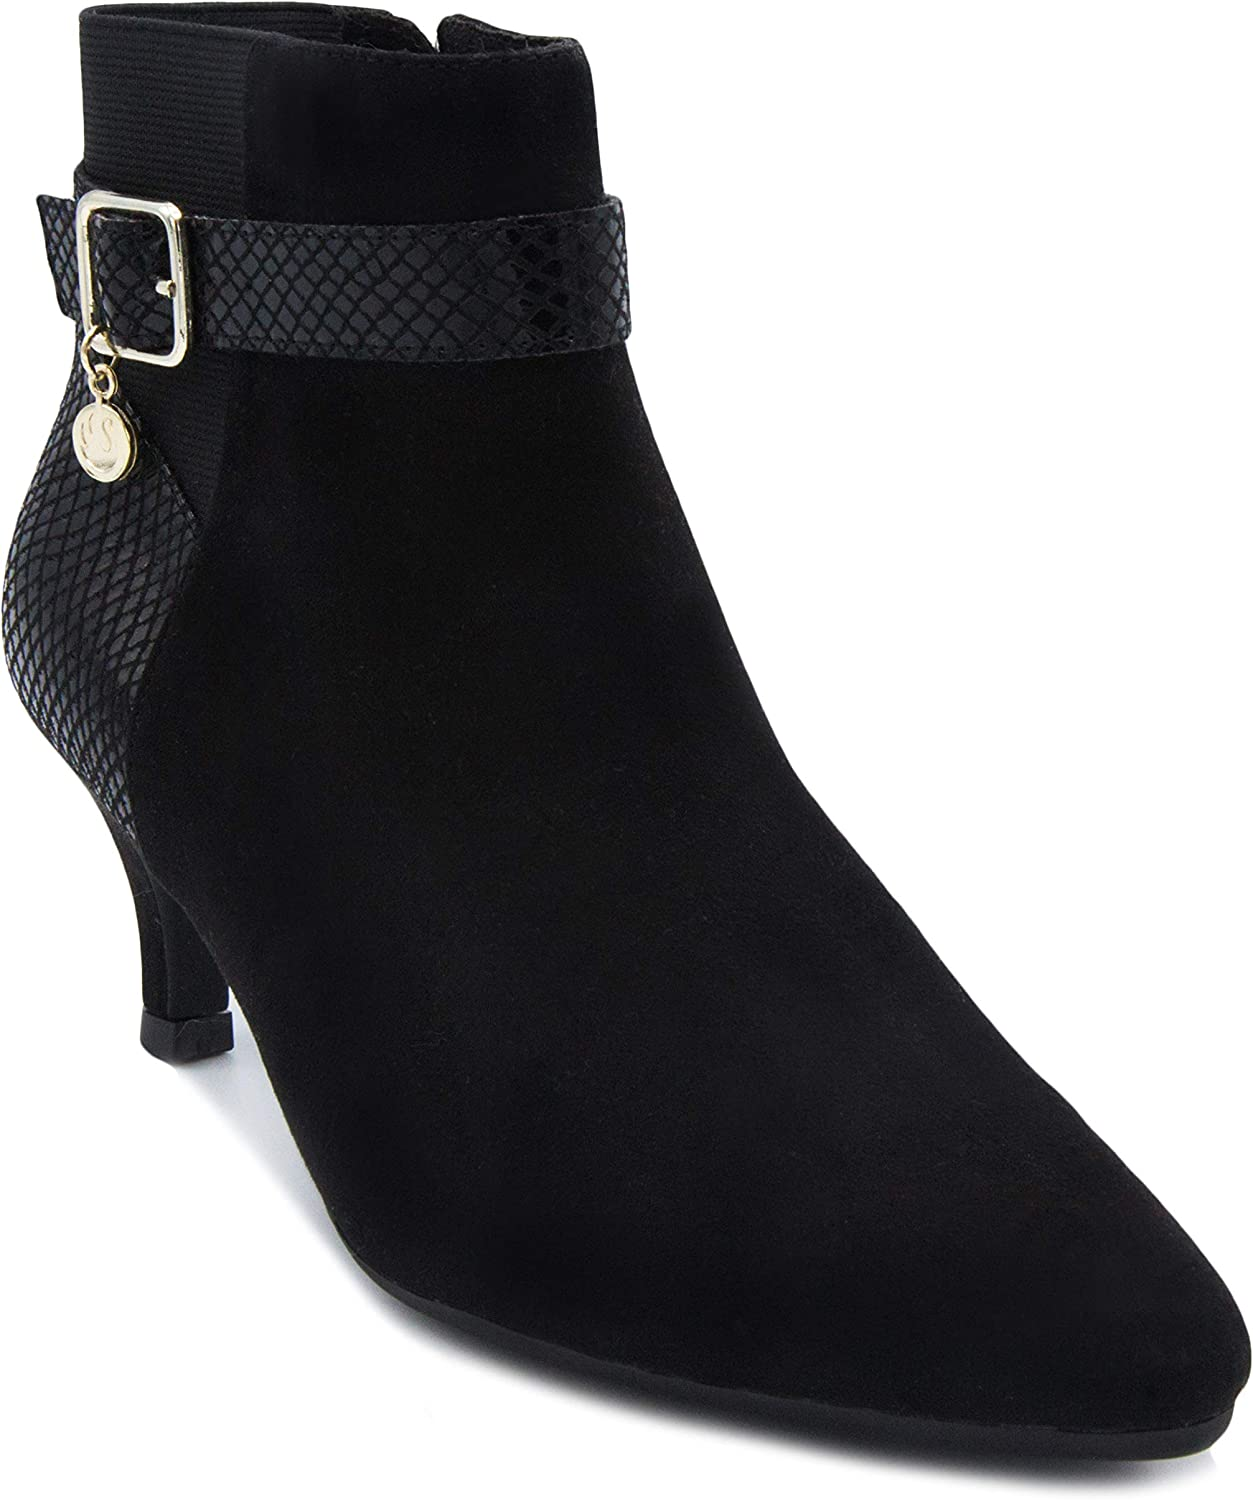 Gloria Vanderbilt Women's Hawn Dress Ankle Boot Ladies Side Zipper Bootie Available in Wide Width Black 7.5